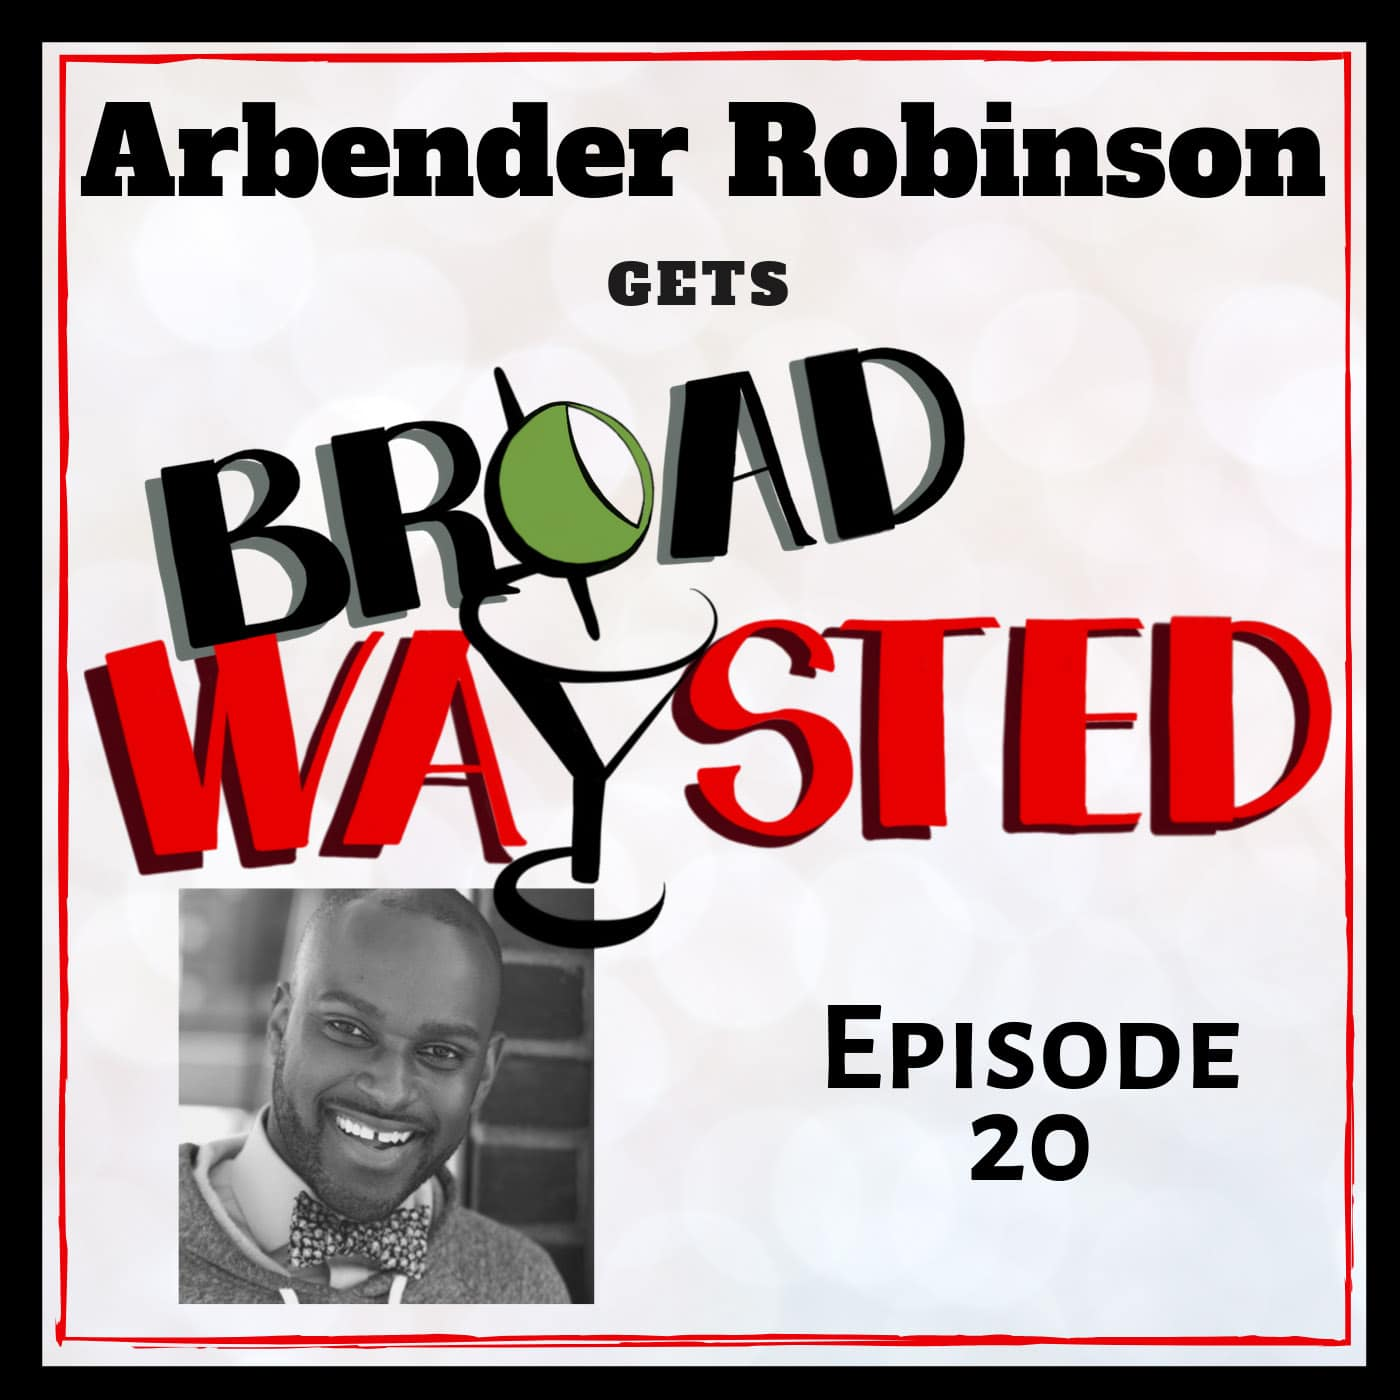 Broadwaysted Ep 20 Arbender Robinson